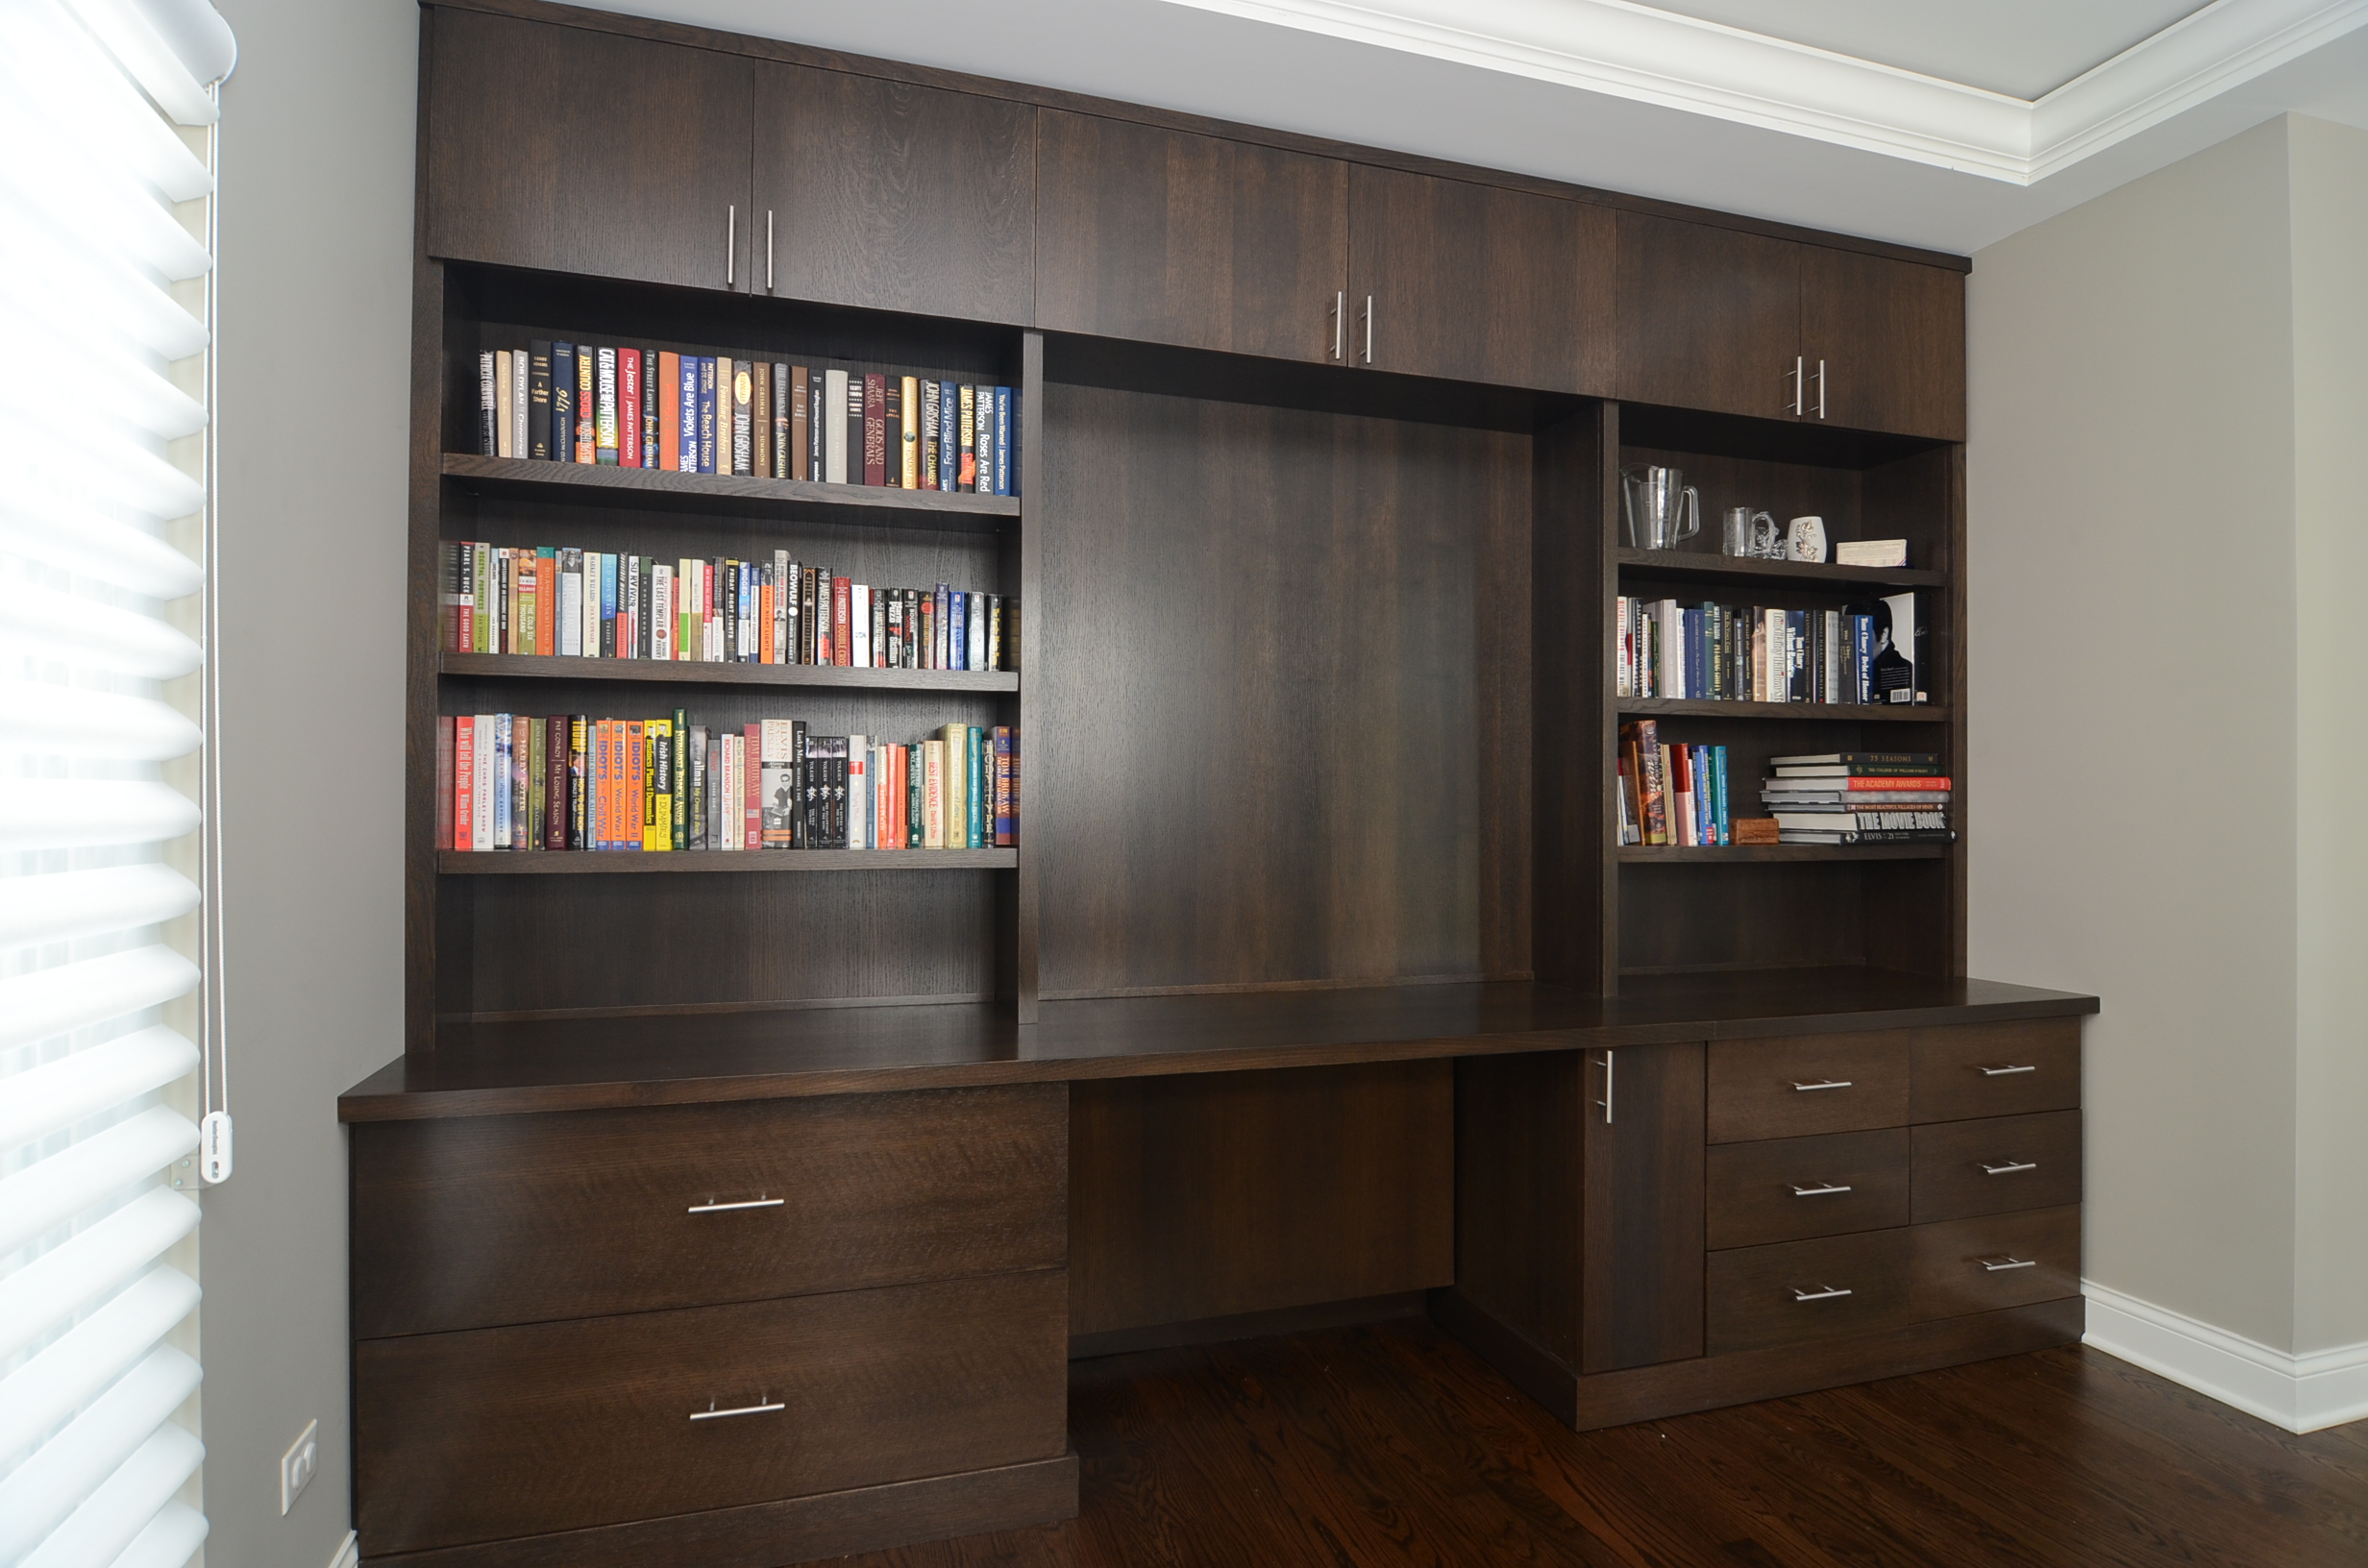 Charmant Extra Big Size Dark Wood Wall Shelving Unit With Center Desk And Under  Cabinet Systems Many